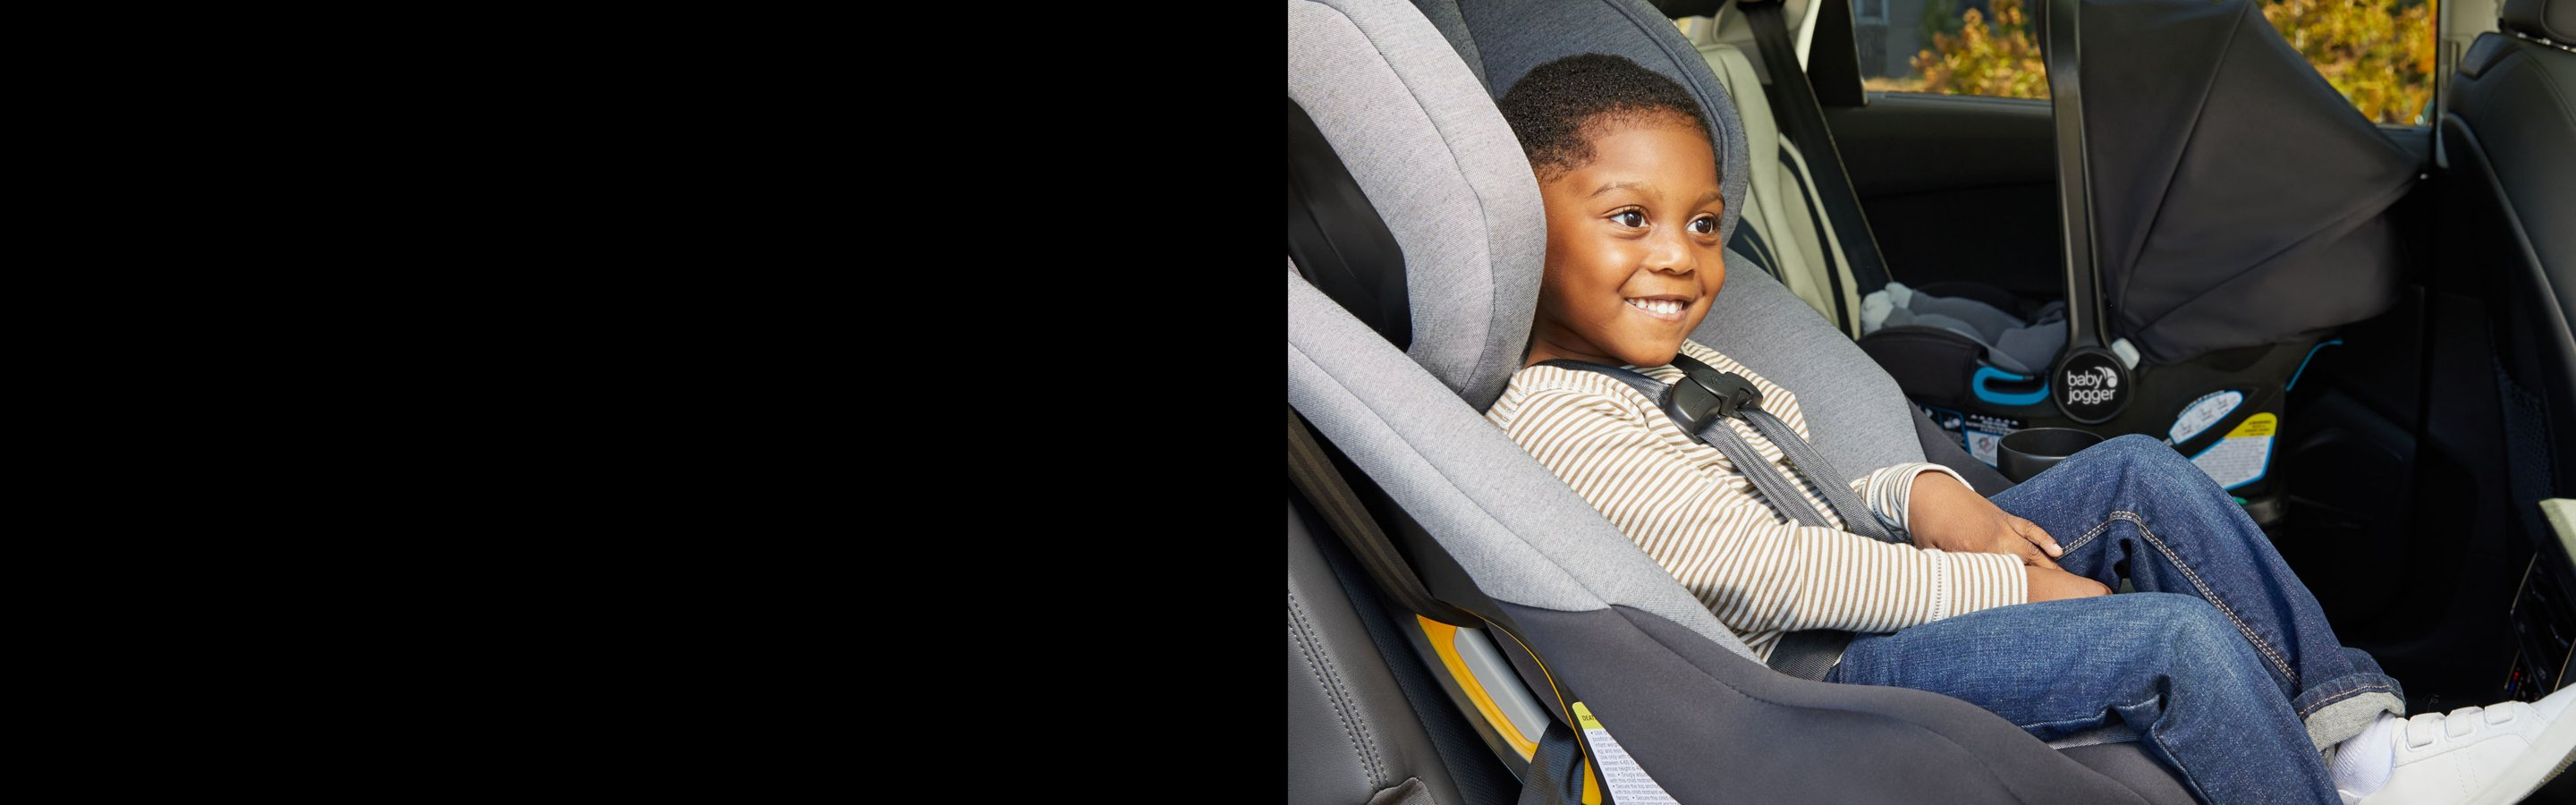 smiling child sitting in car seat in car